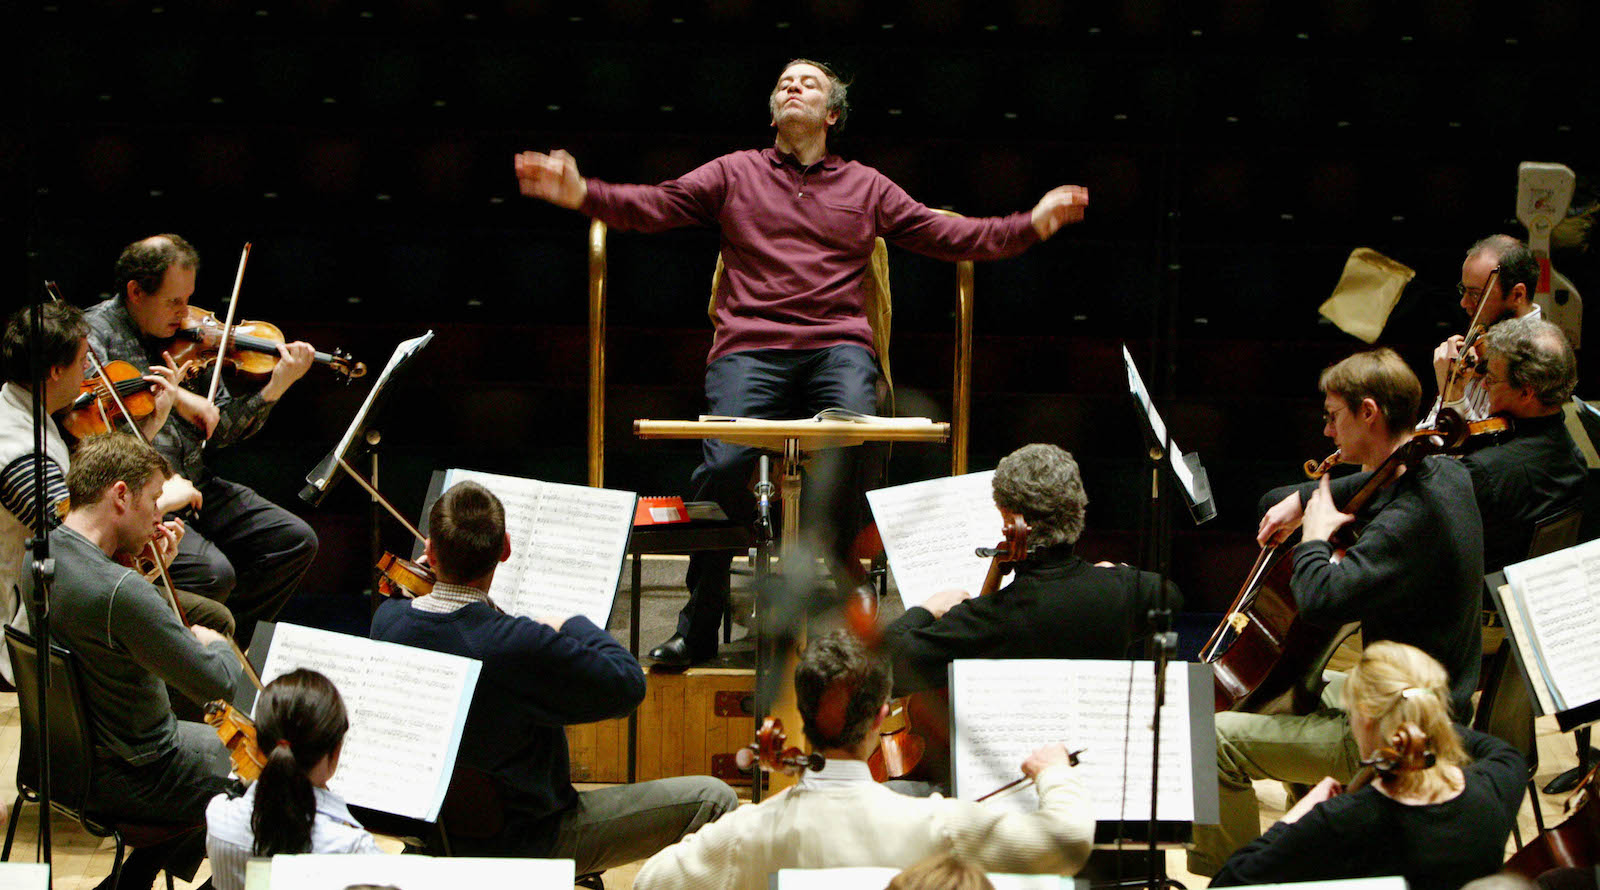 Valery Gergiev of Russia conducts the London Symphony Orchestra during rehearsals of Prokofiev's symphonies at the Barbican in London, April 29, 2004. Gergiev, Artistic Director of the Kirov Opera and the Mariinsky Theatre in St Petersburg, appears during a week long series of concerts to celebrate the London Symphony Orchestra's centenary year. REUTERS/Helen Atkinson  HMA/JD/THI - RTRIFZ0